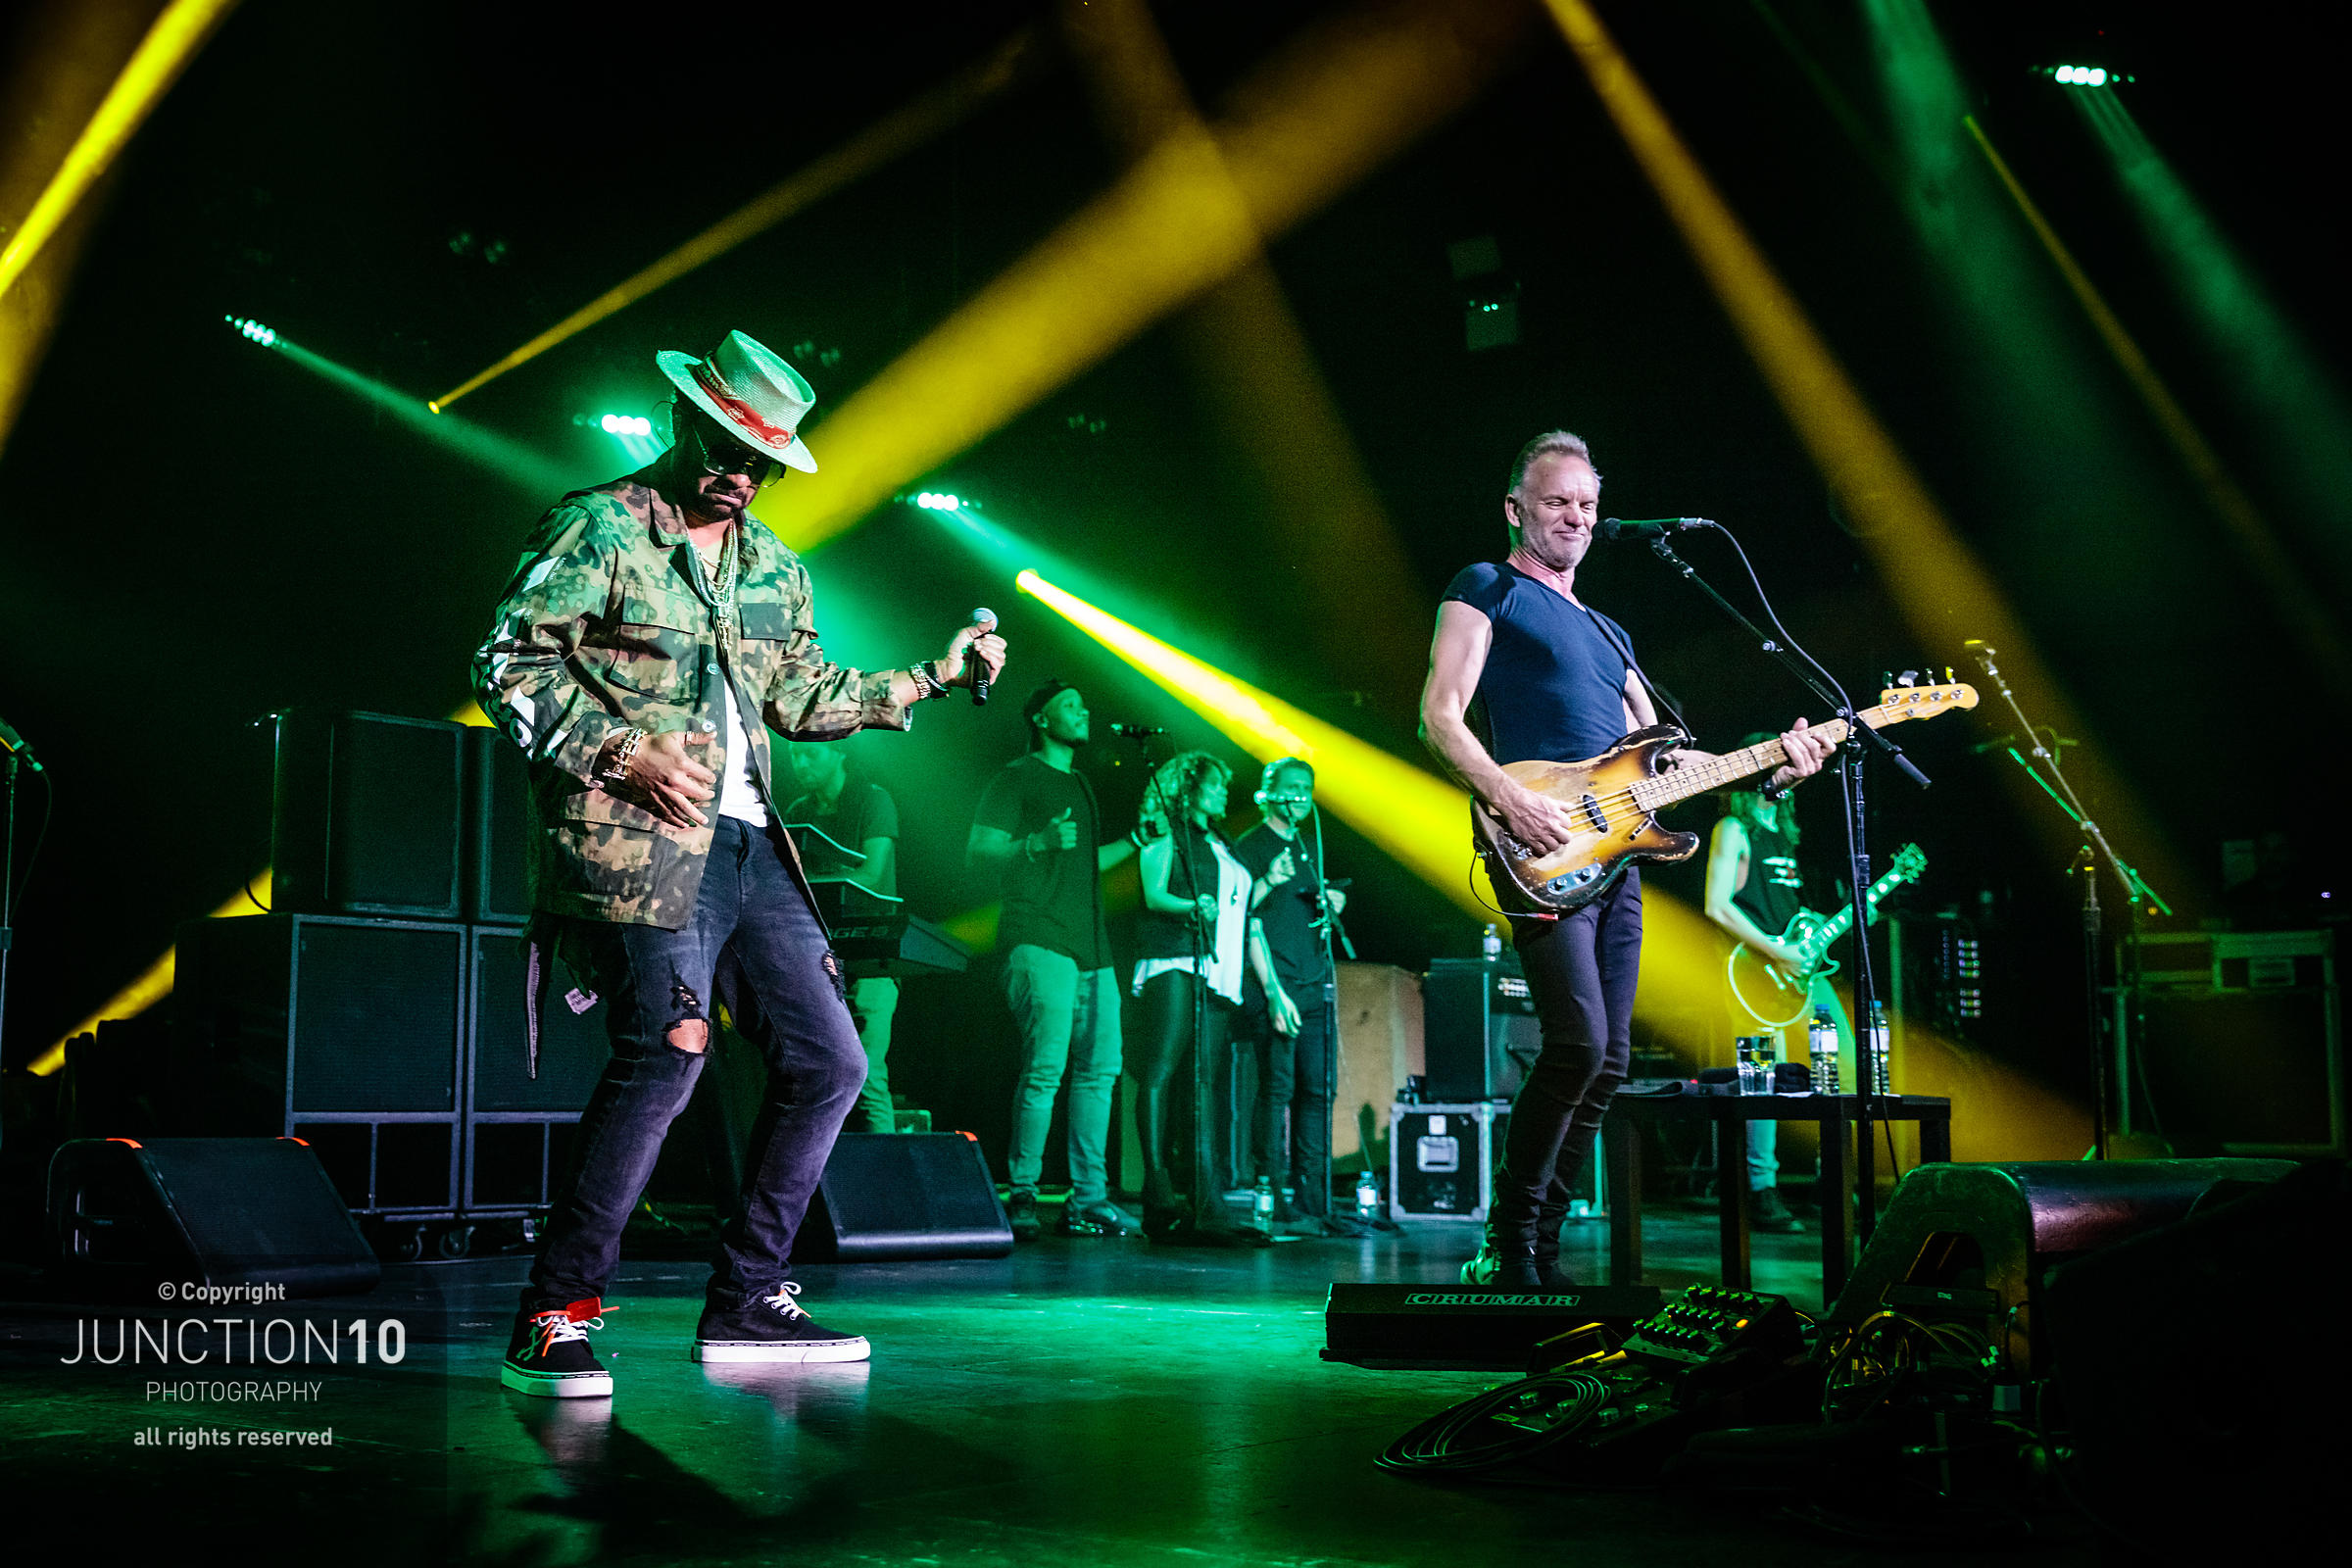 Sting and Shaggy concert at O2 Academy, Birmingham, United Kingdom - 24 May 2019